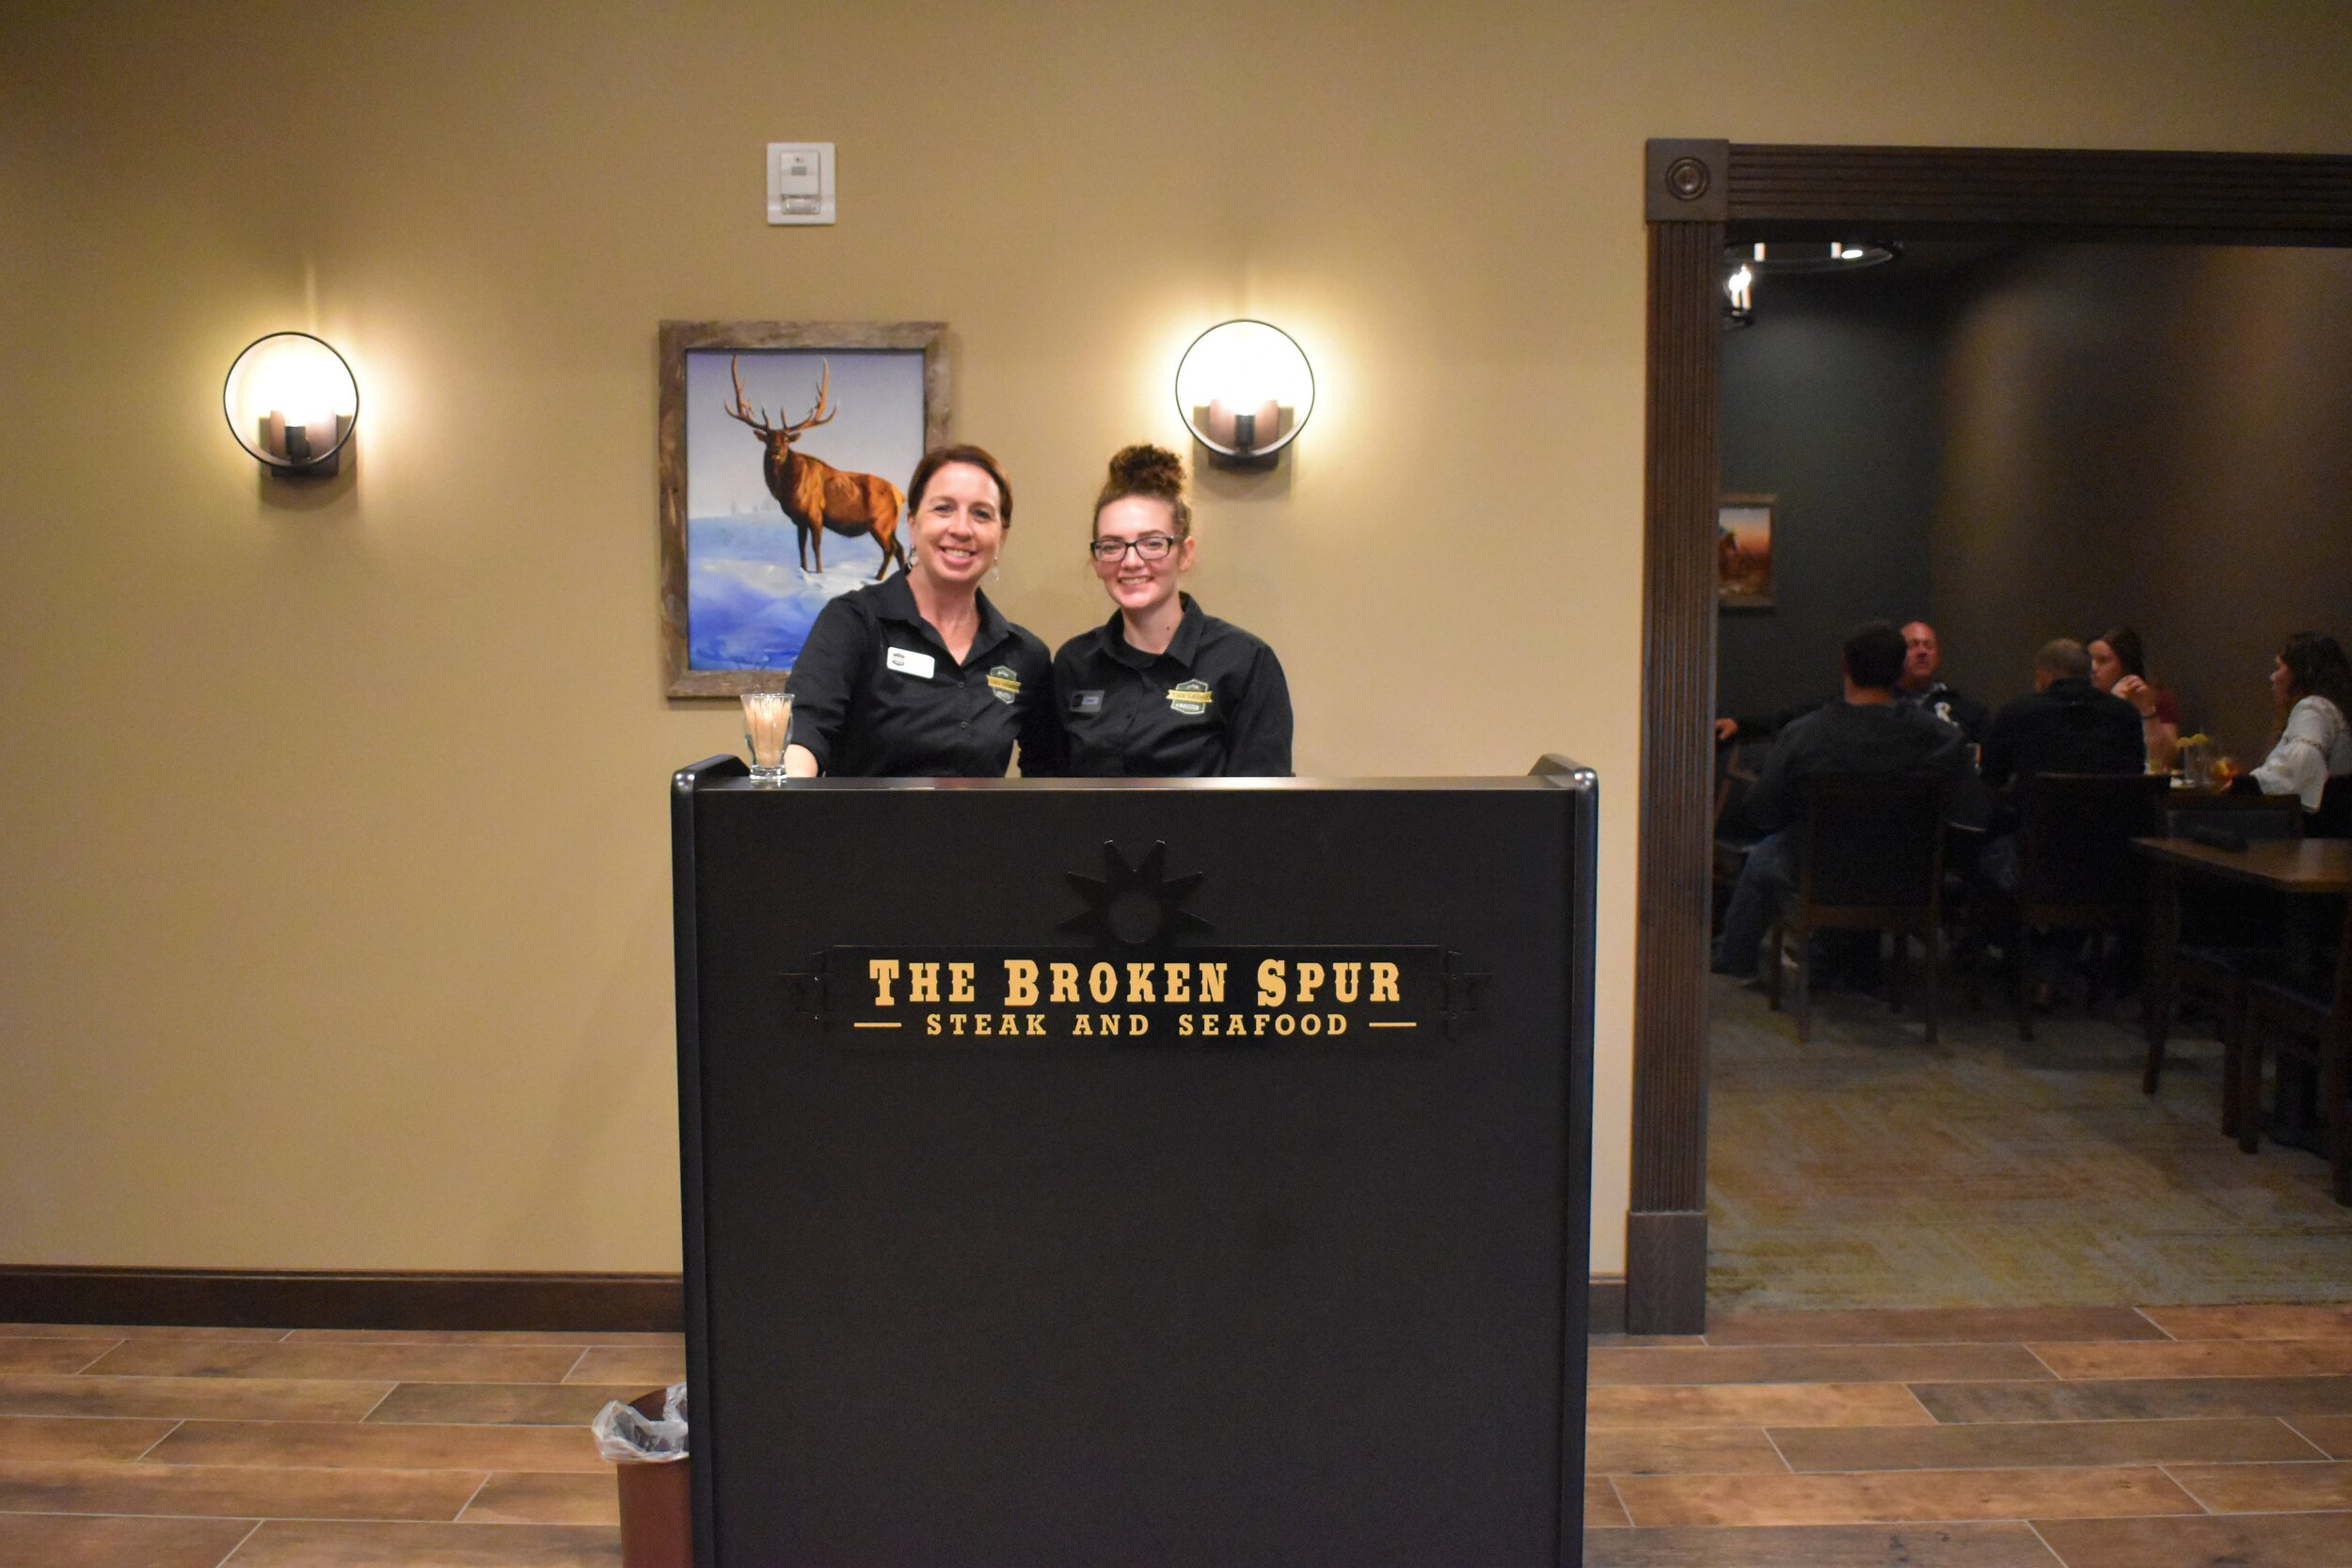 L to R- Front desk attendant and Two Elks event center co-coordinator Karen Boyle, and Broken Spur server Faith Ploof.